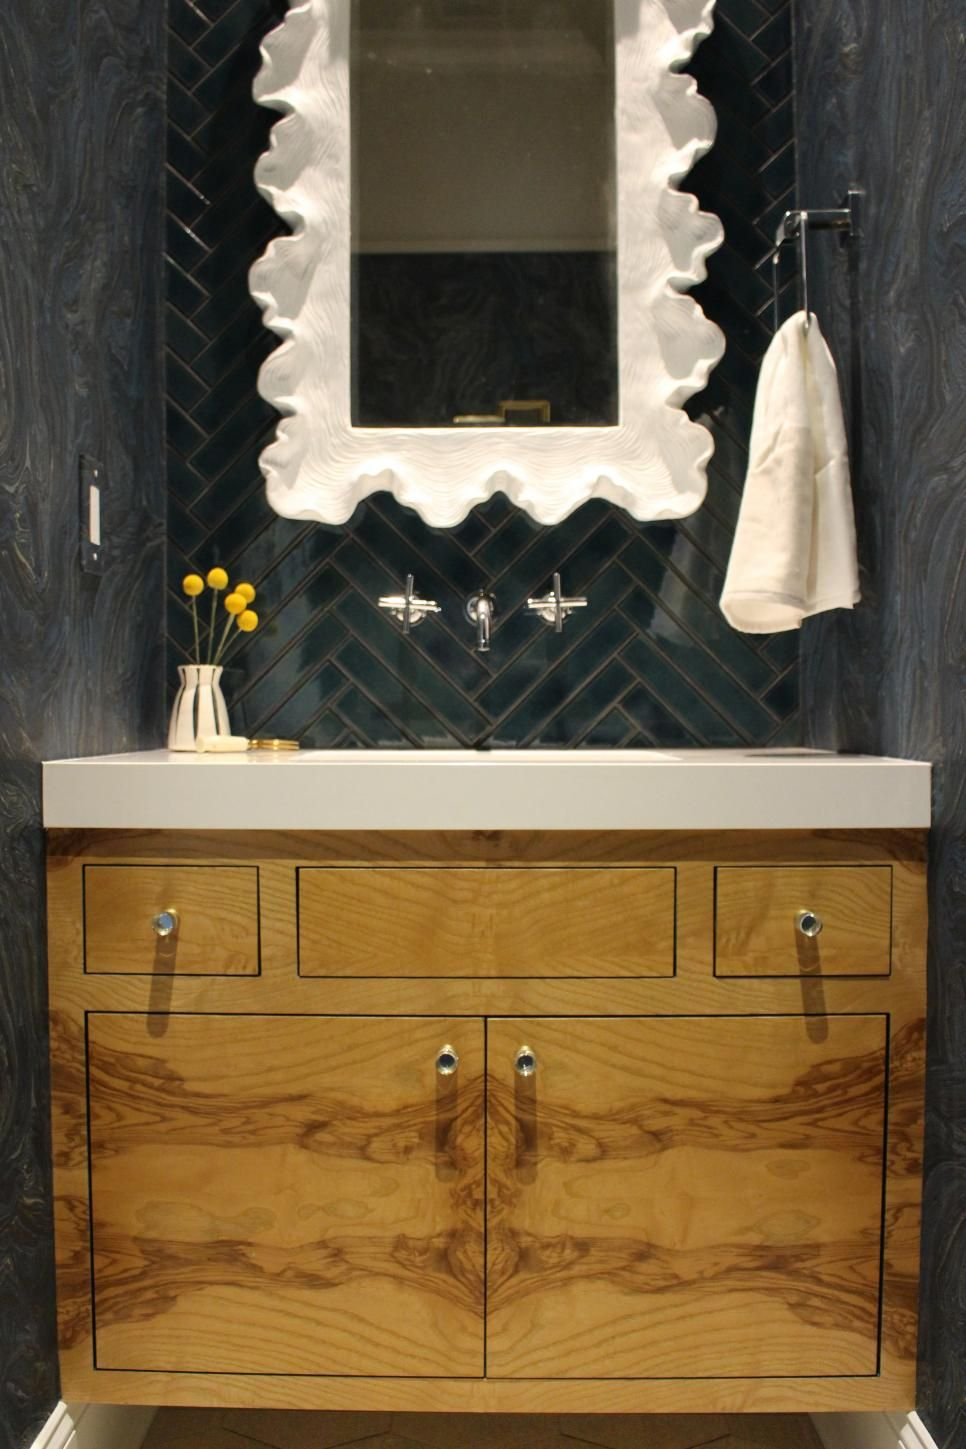 18 Tiny Bathrooms That Pack a Punch #modernpowderrooms